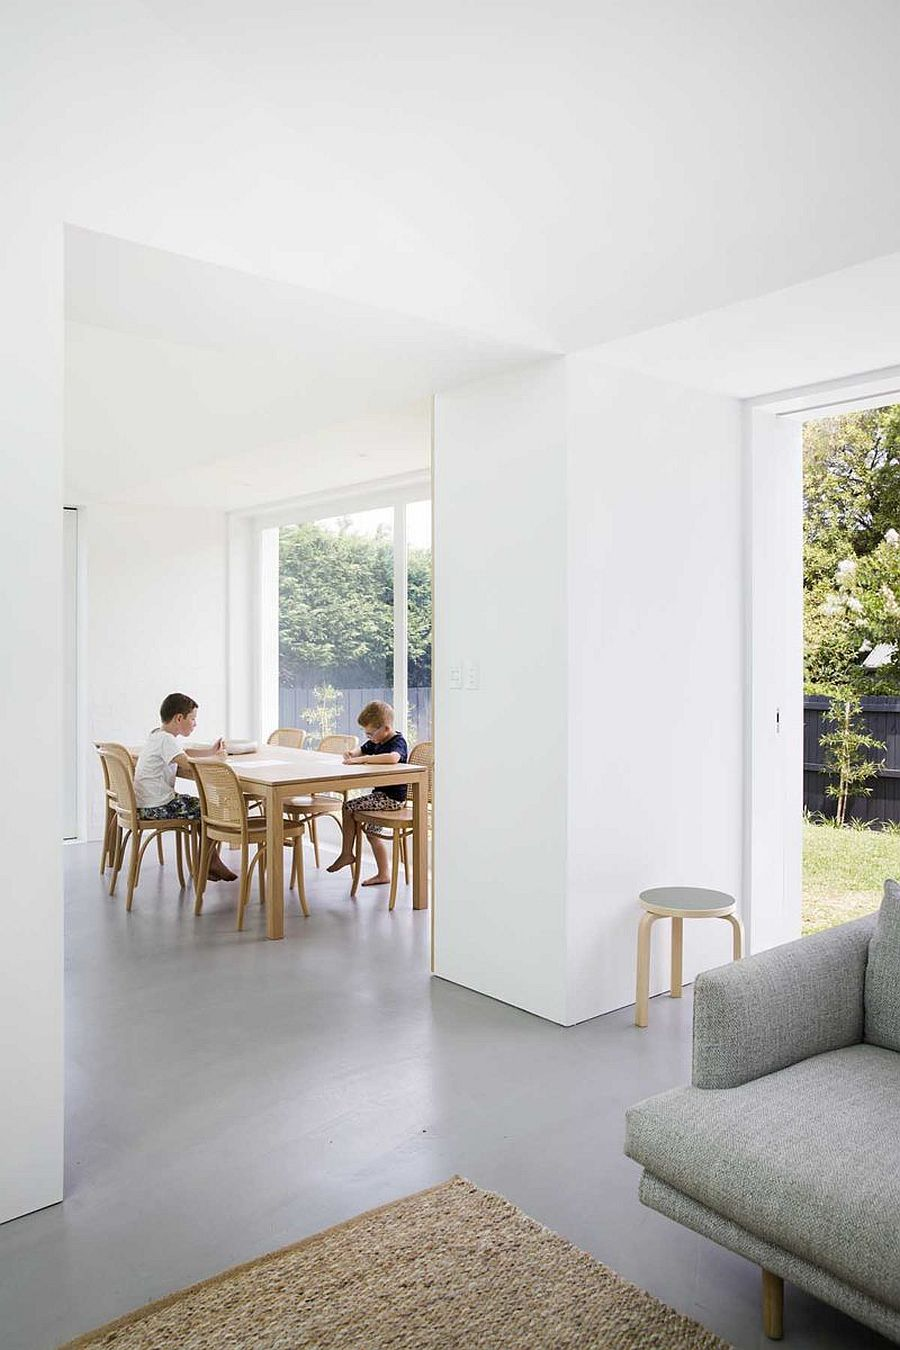 Sliding-glass-doors-and-large-windows-now-connect-the-living-area-kitchen-and-dining-with-the-garden-65280